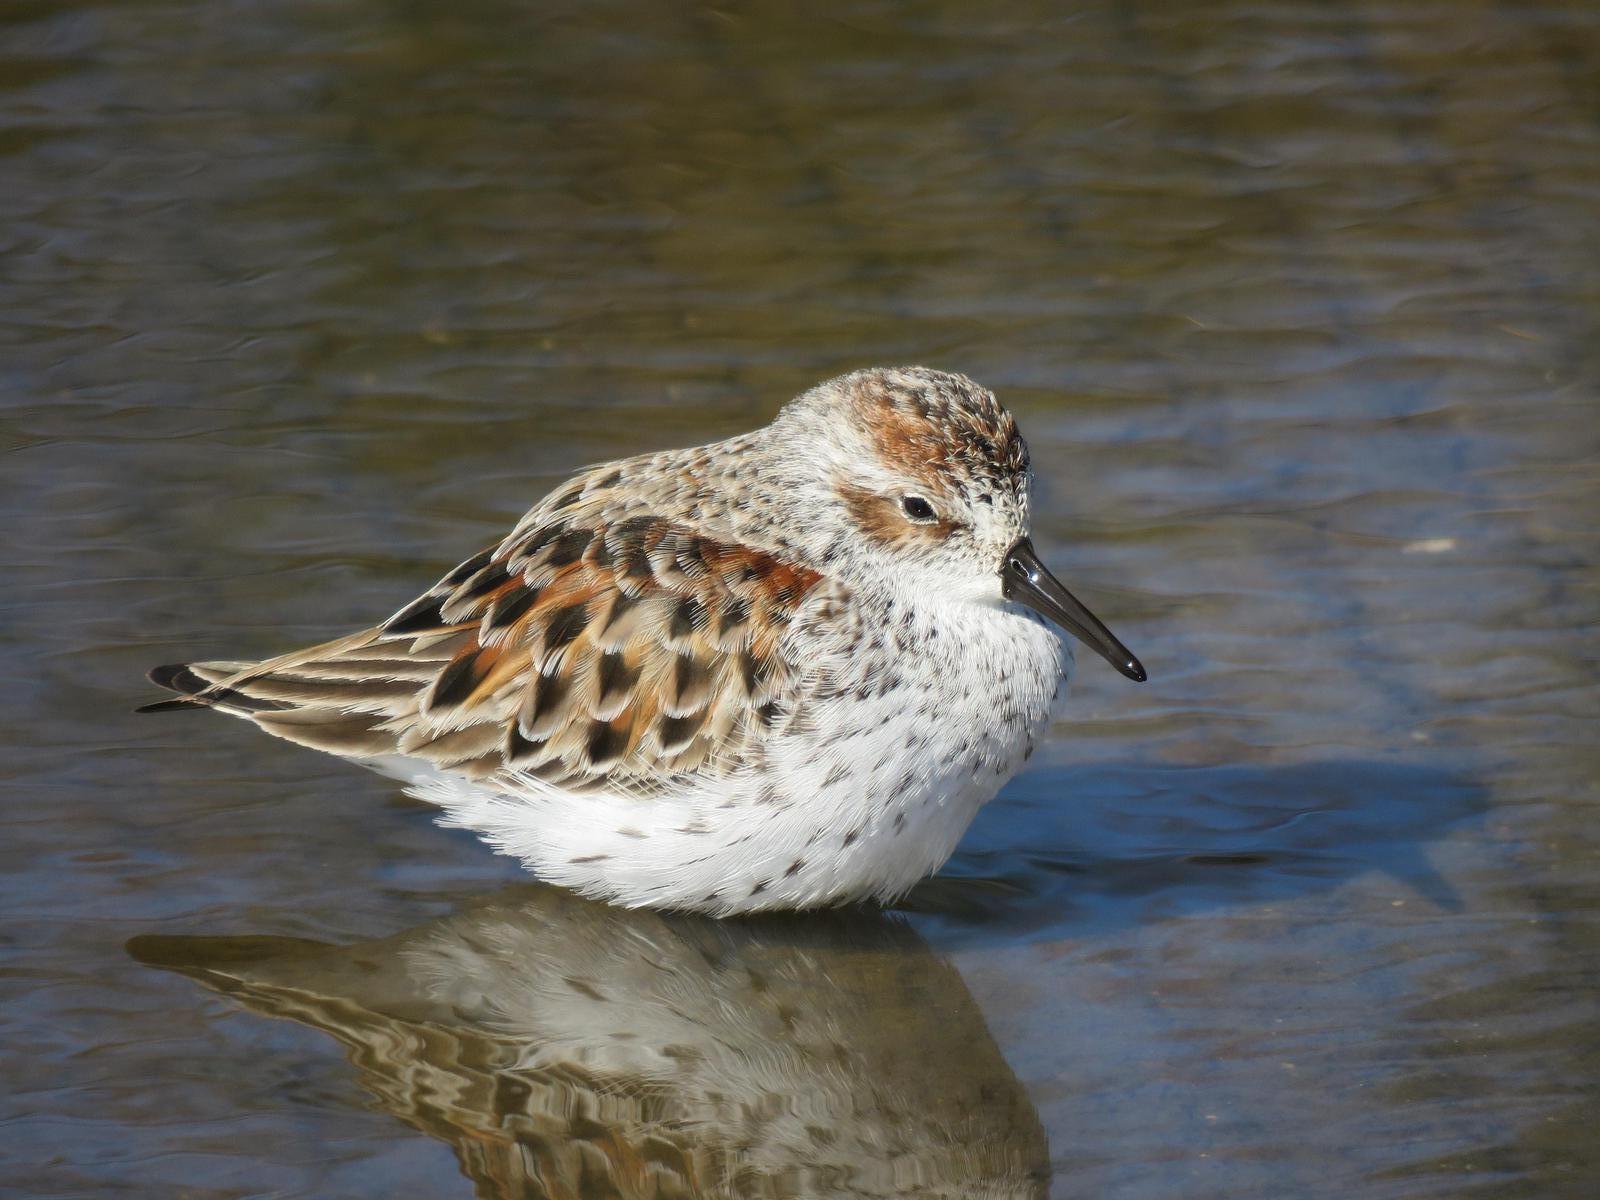 Western Sandpiper Photo by Don Glasco